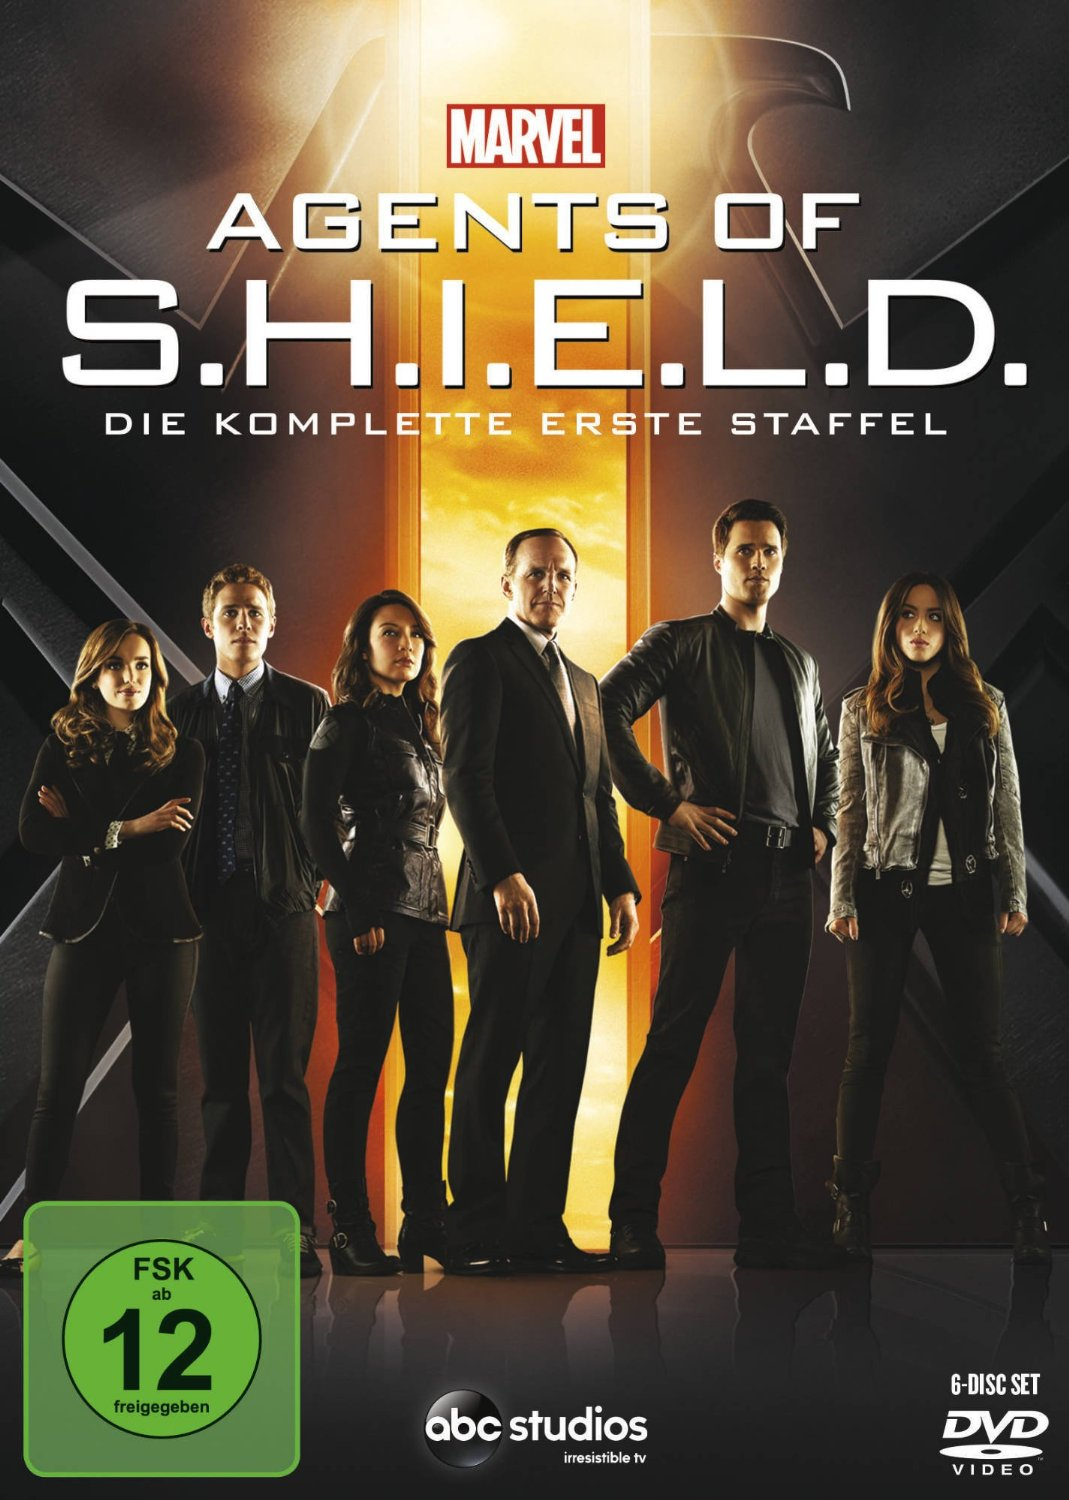 DVD-Cover: Agents of Shield